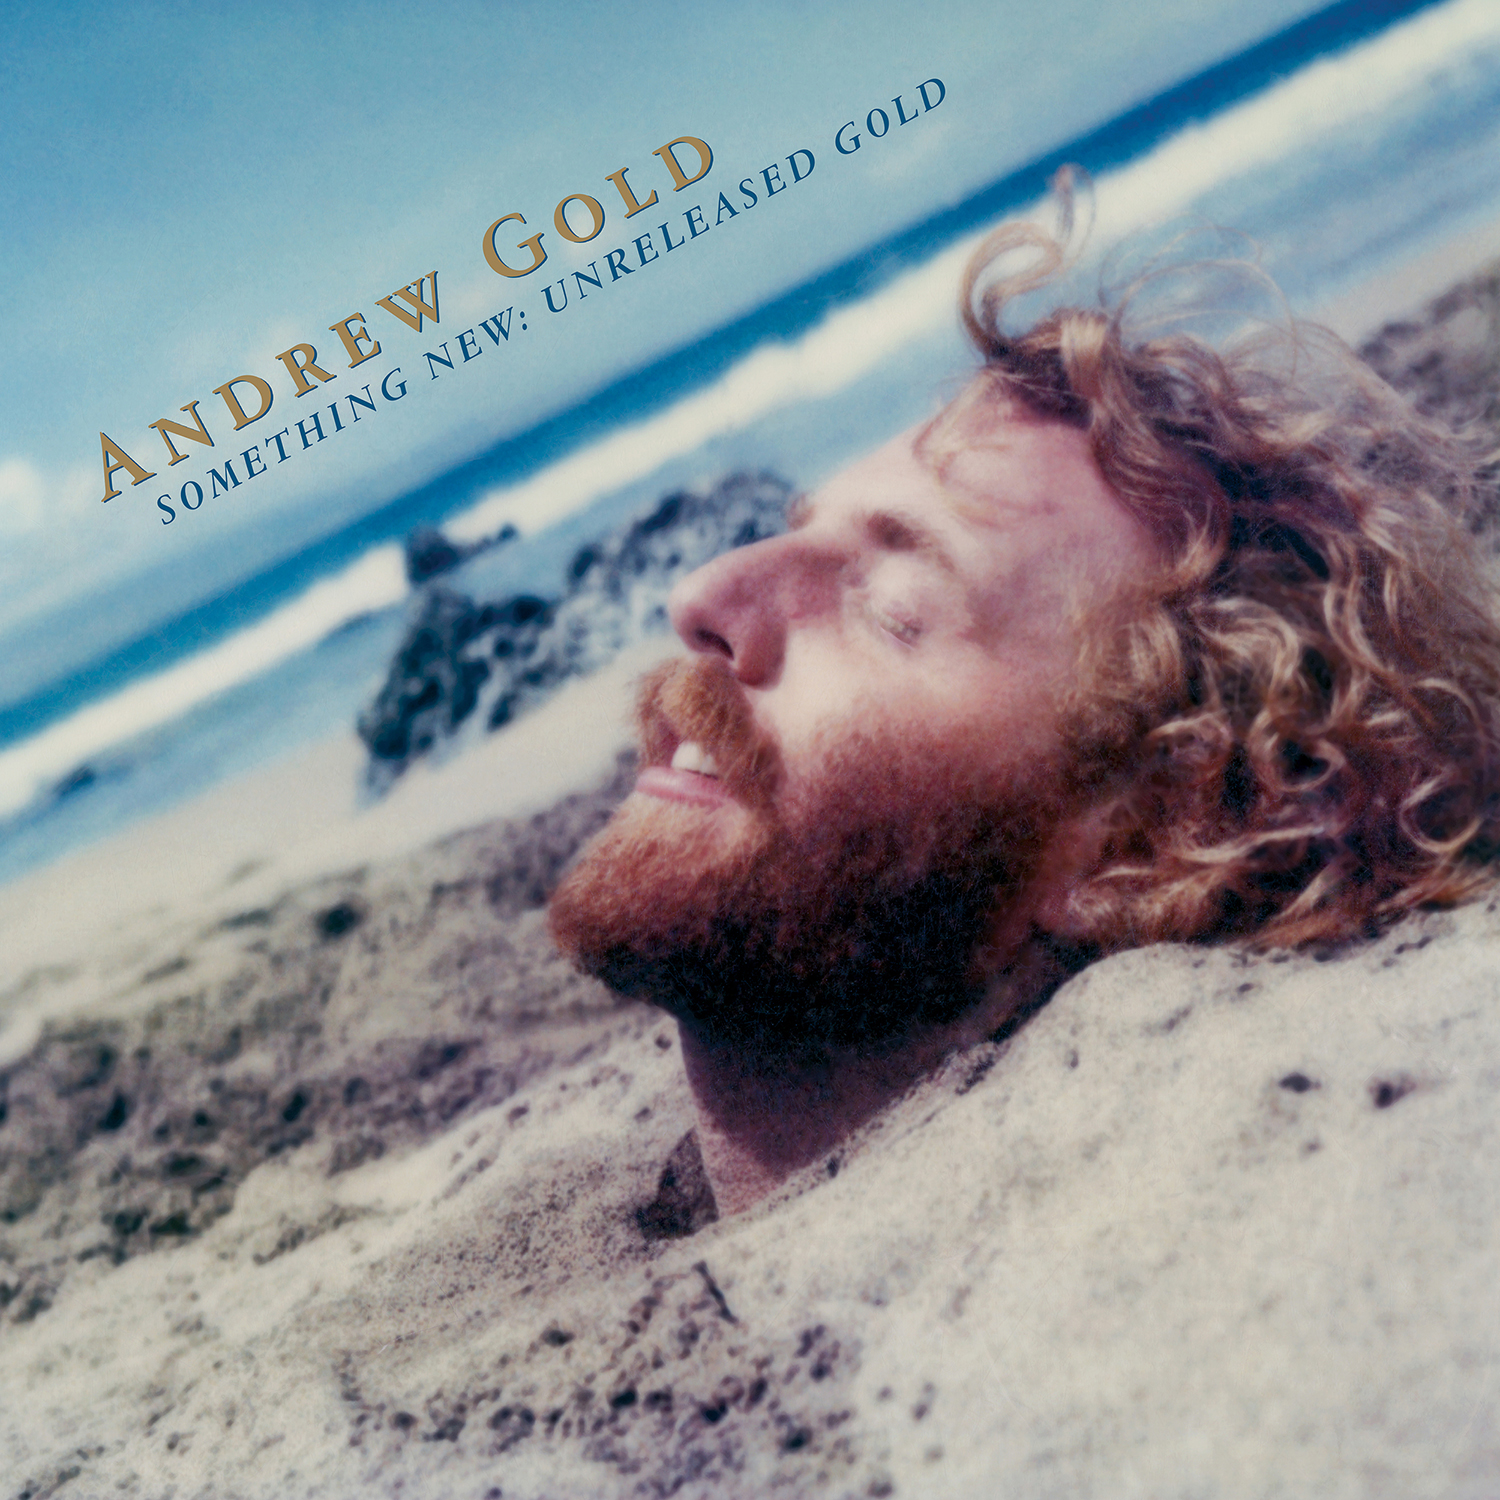 Andrew Gold — Something New: Unreleased Gold – Omnivore Recordings